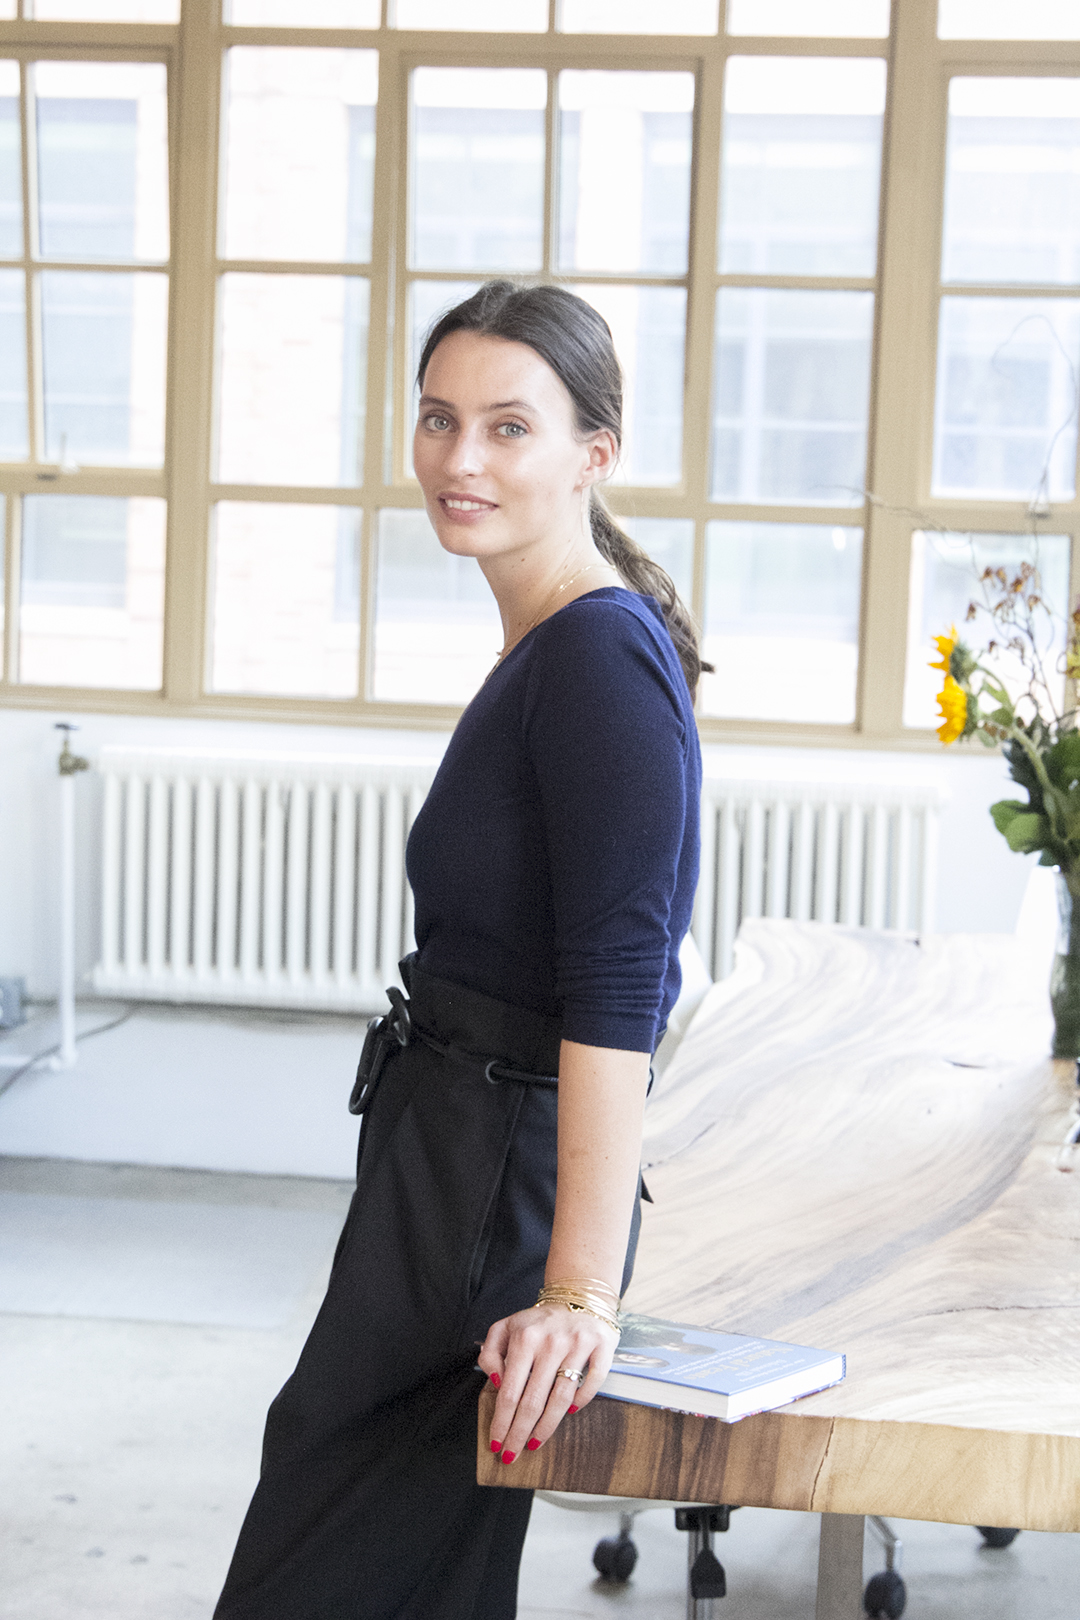 Deliciously Ella founder, Ella Mills on entrepreneurship